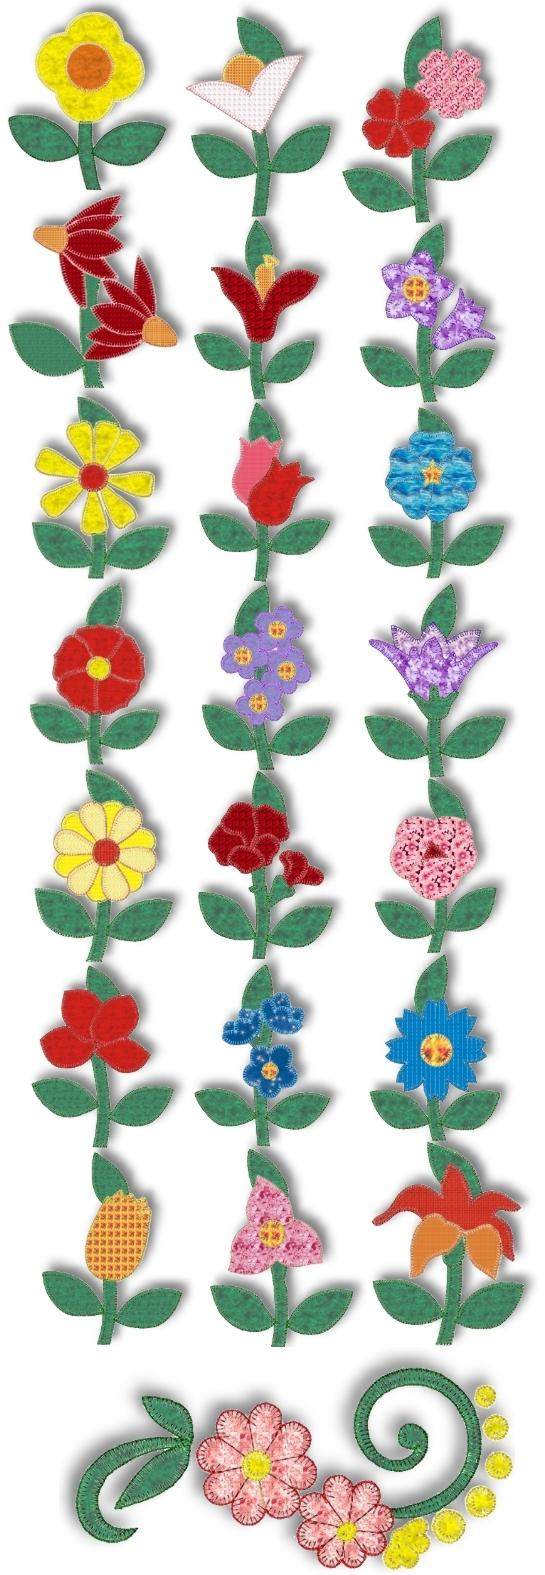 Advanced embroidery designs flowers in my garden for Garden embroidery designs